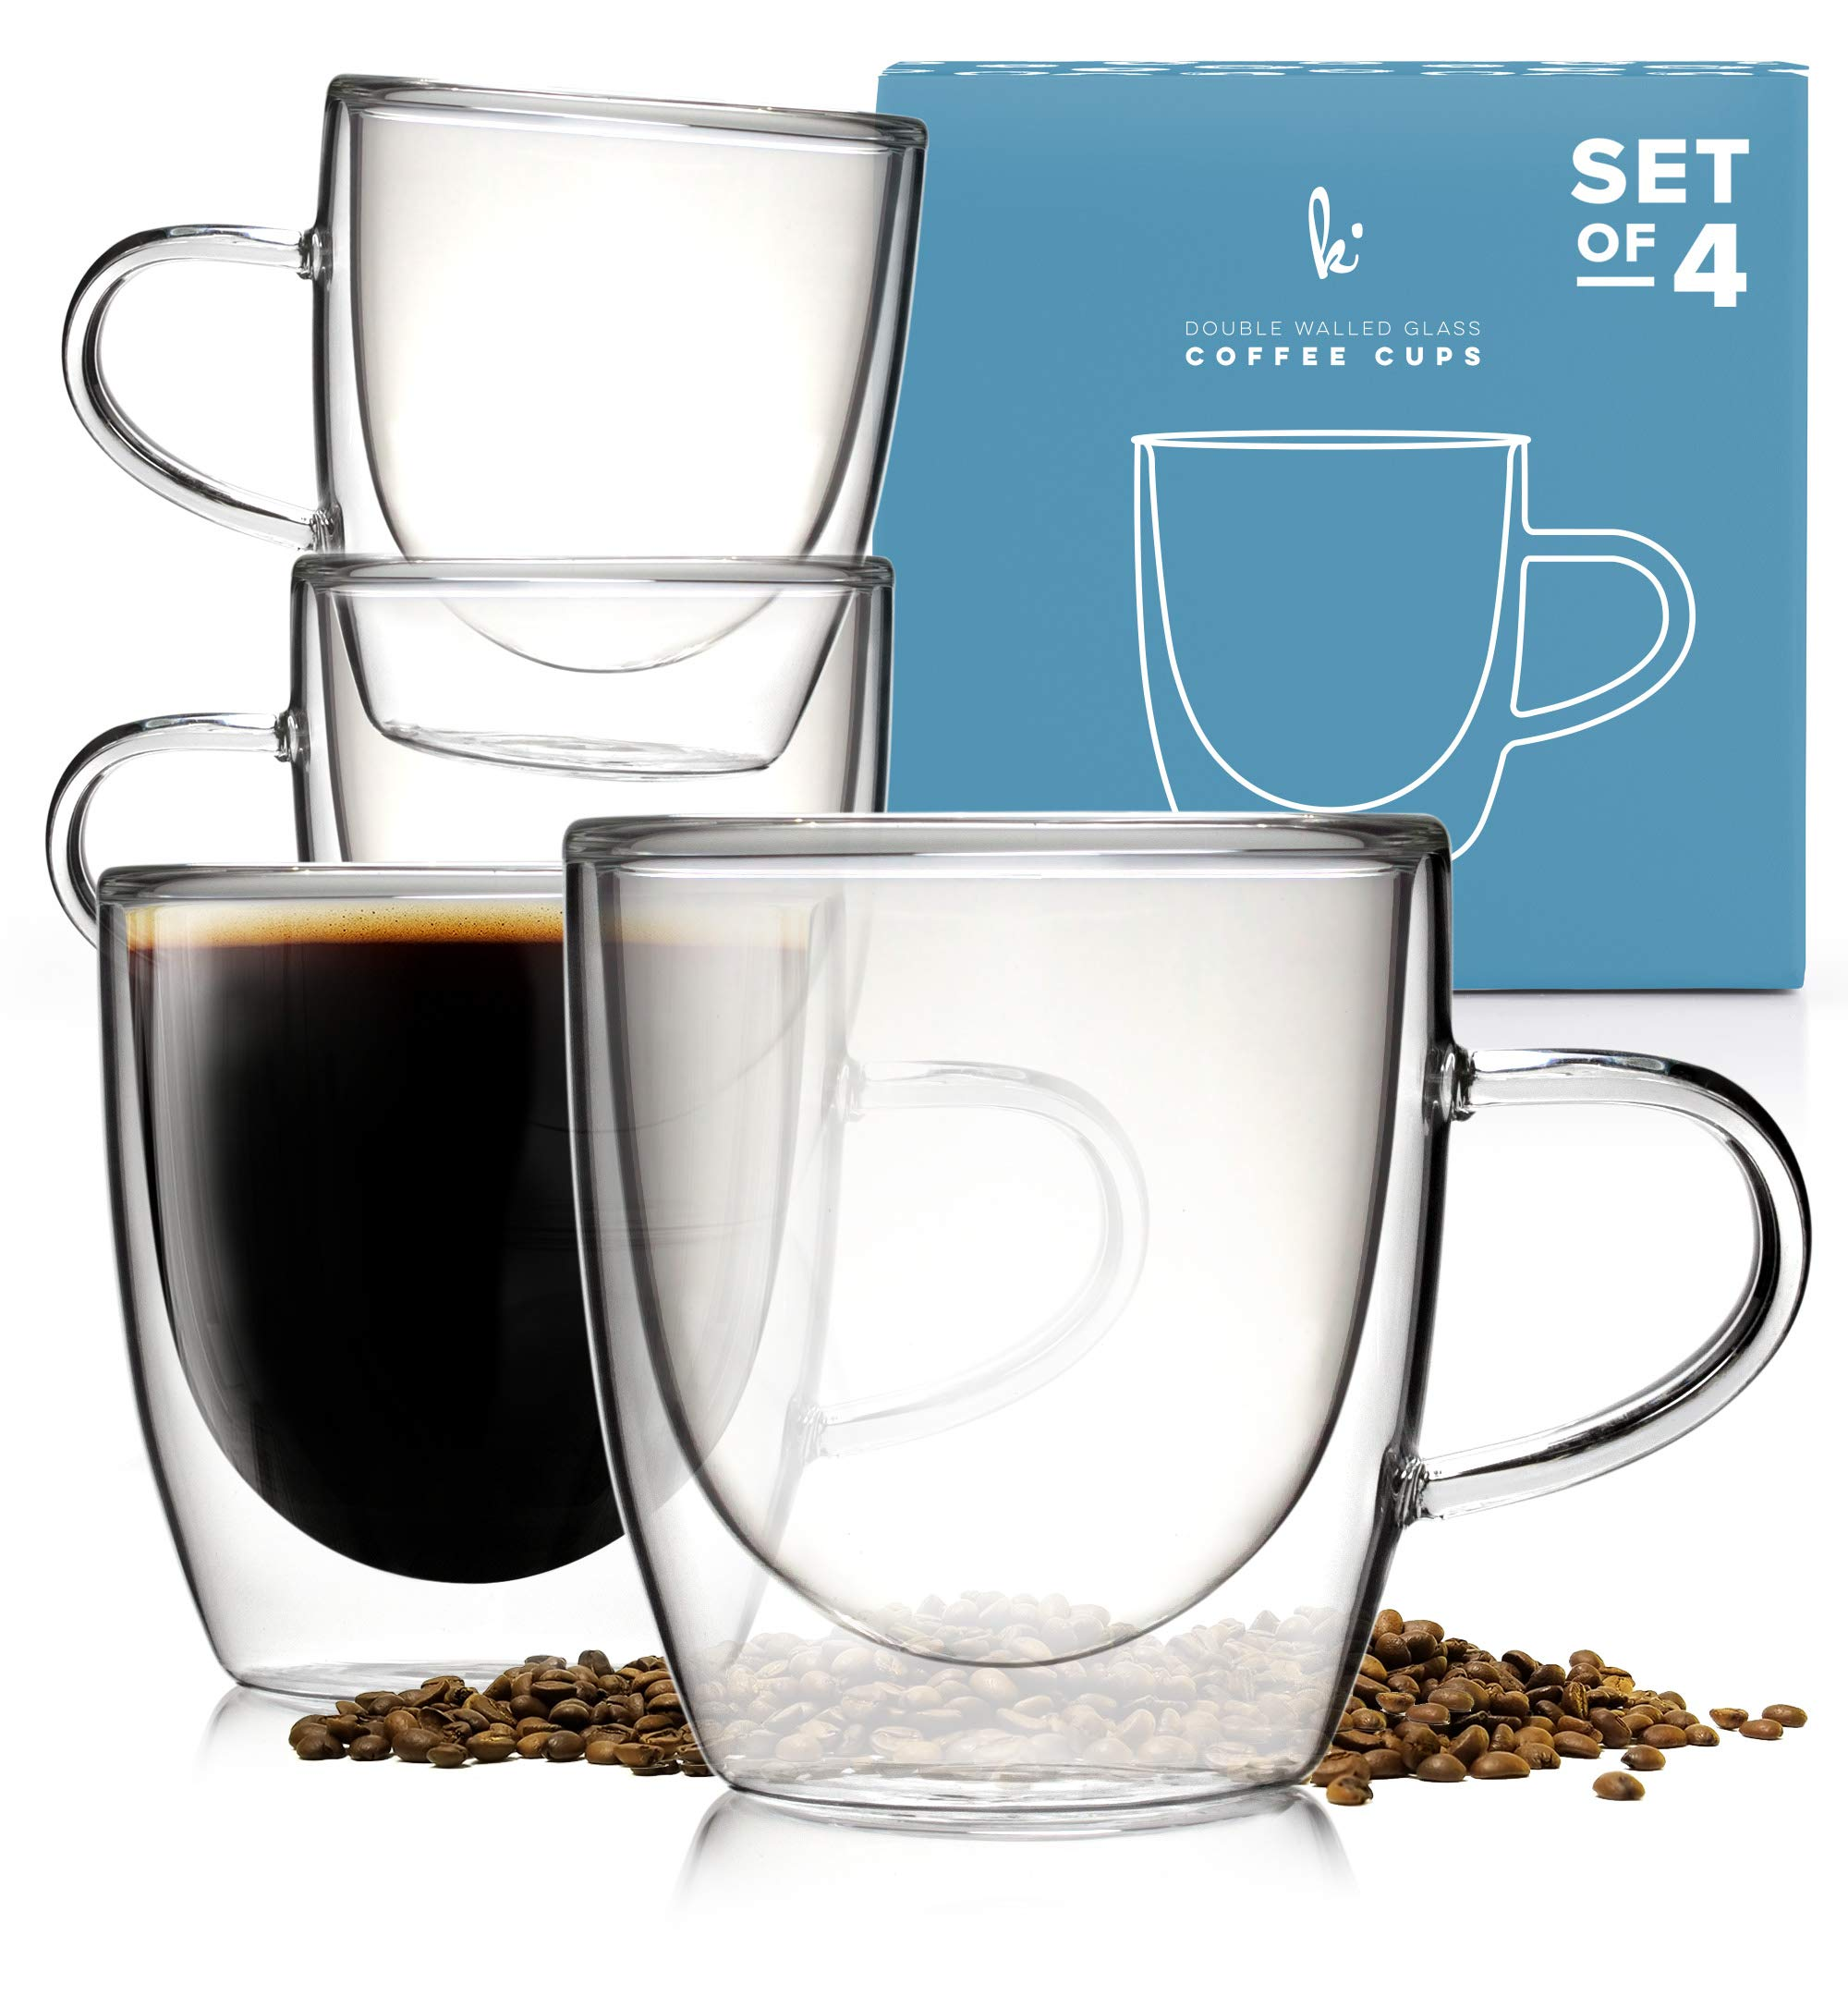 Glass Coffee or Tea Cups Drinking Glasses Set of 4-5oz Double Walled Thermo Insulated Mugs with Handle for Espresso Latte Cappuccino